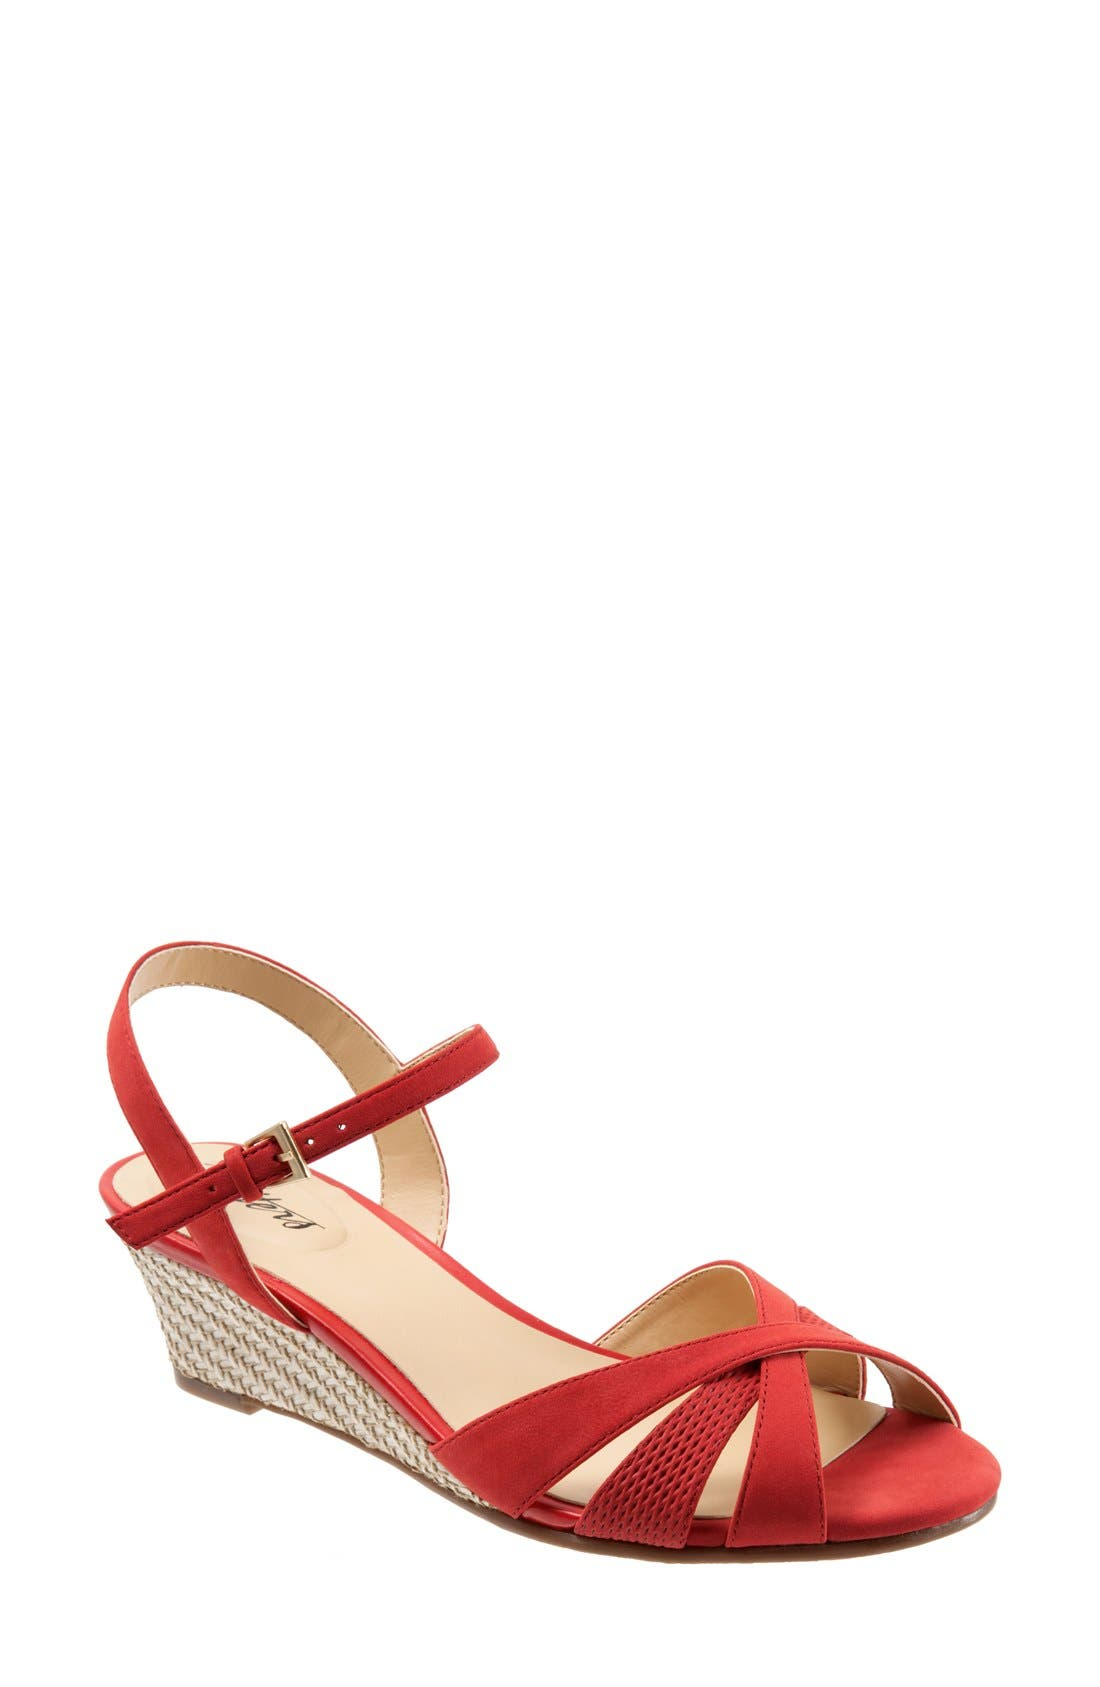 'Mickey' Wedge Sandal,                             Main thumbnail 1, color,